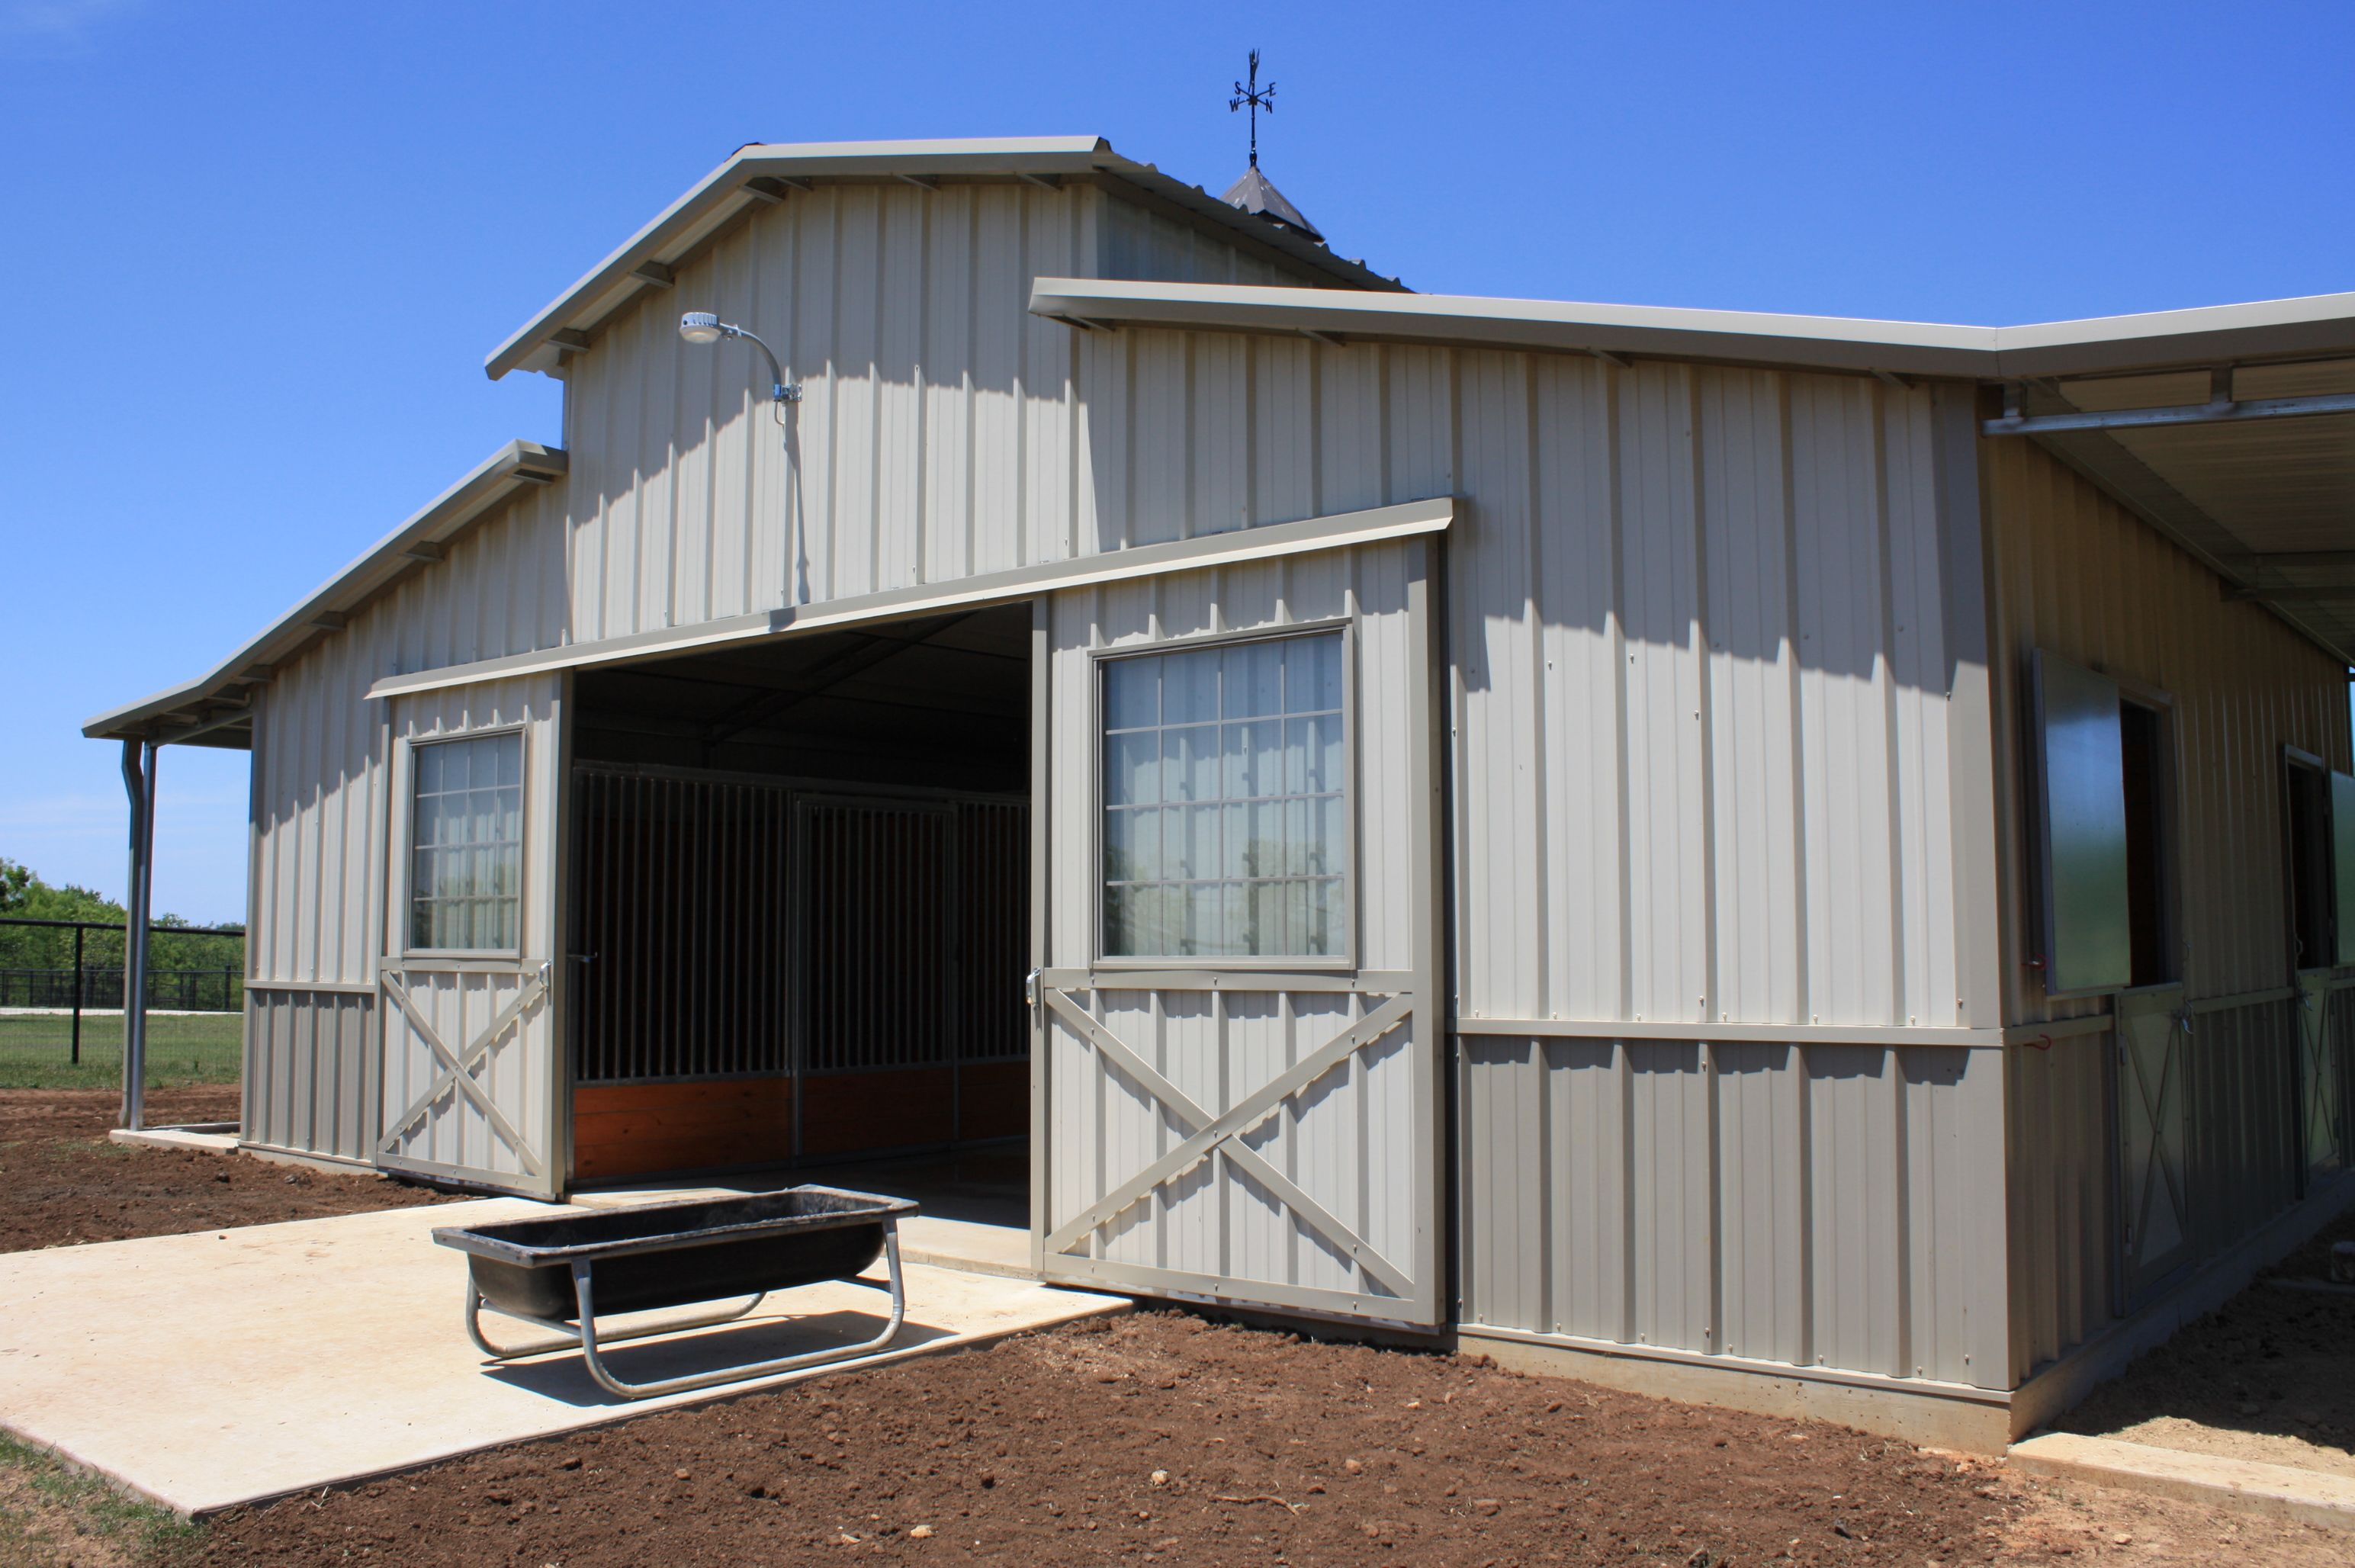 This Barn Is A 36 X 24 Raised Center Aisle With 3 12 X 12 Stalls And 1 Tack Room With Classic Style Som Horse Barn Designs Barn Design Mini Horse Barn